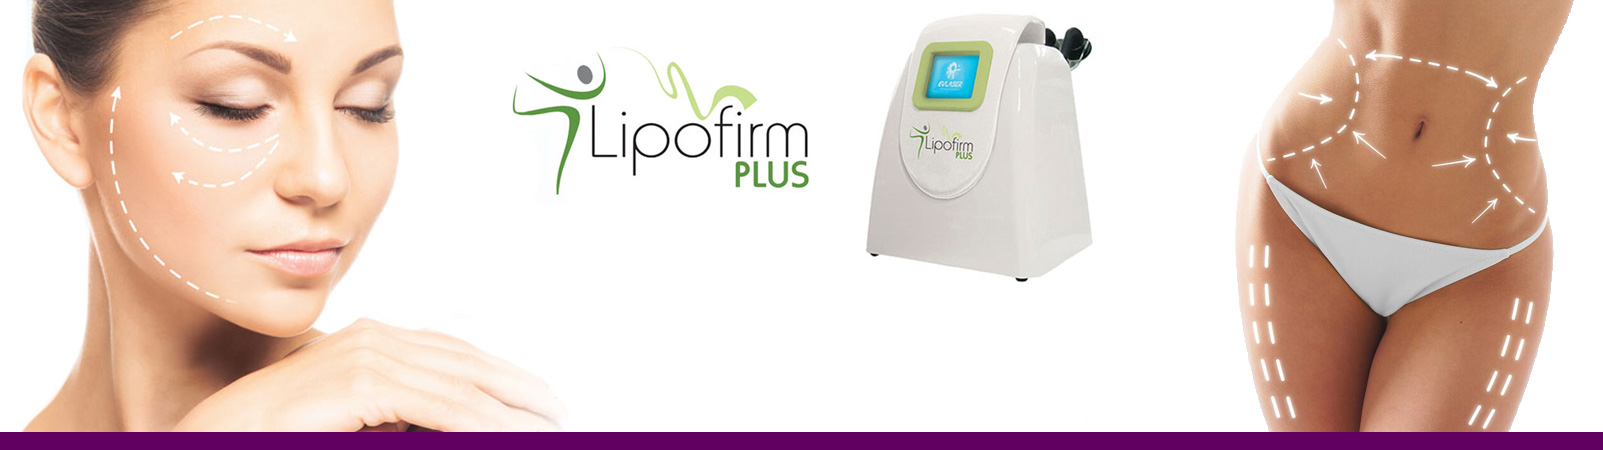 Lipofirm Plus Inch Loss Treatment